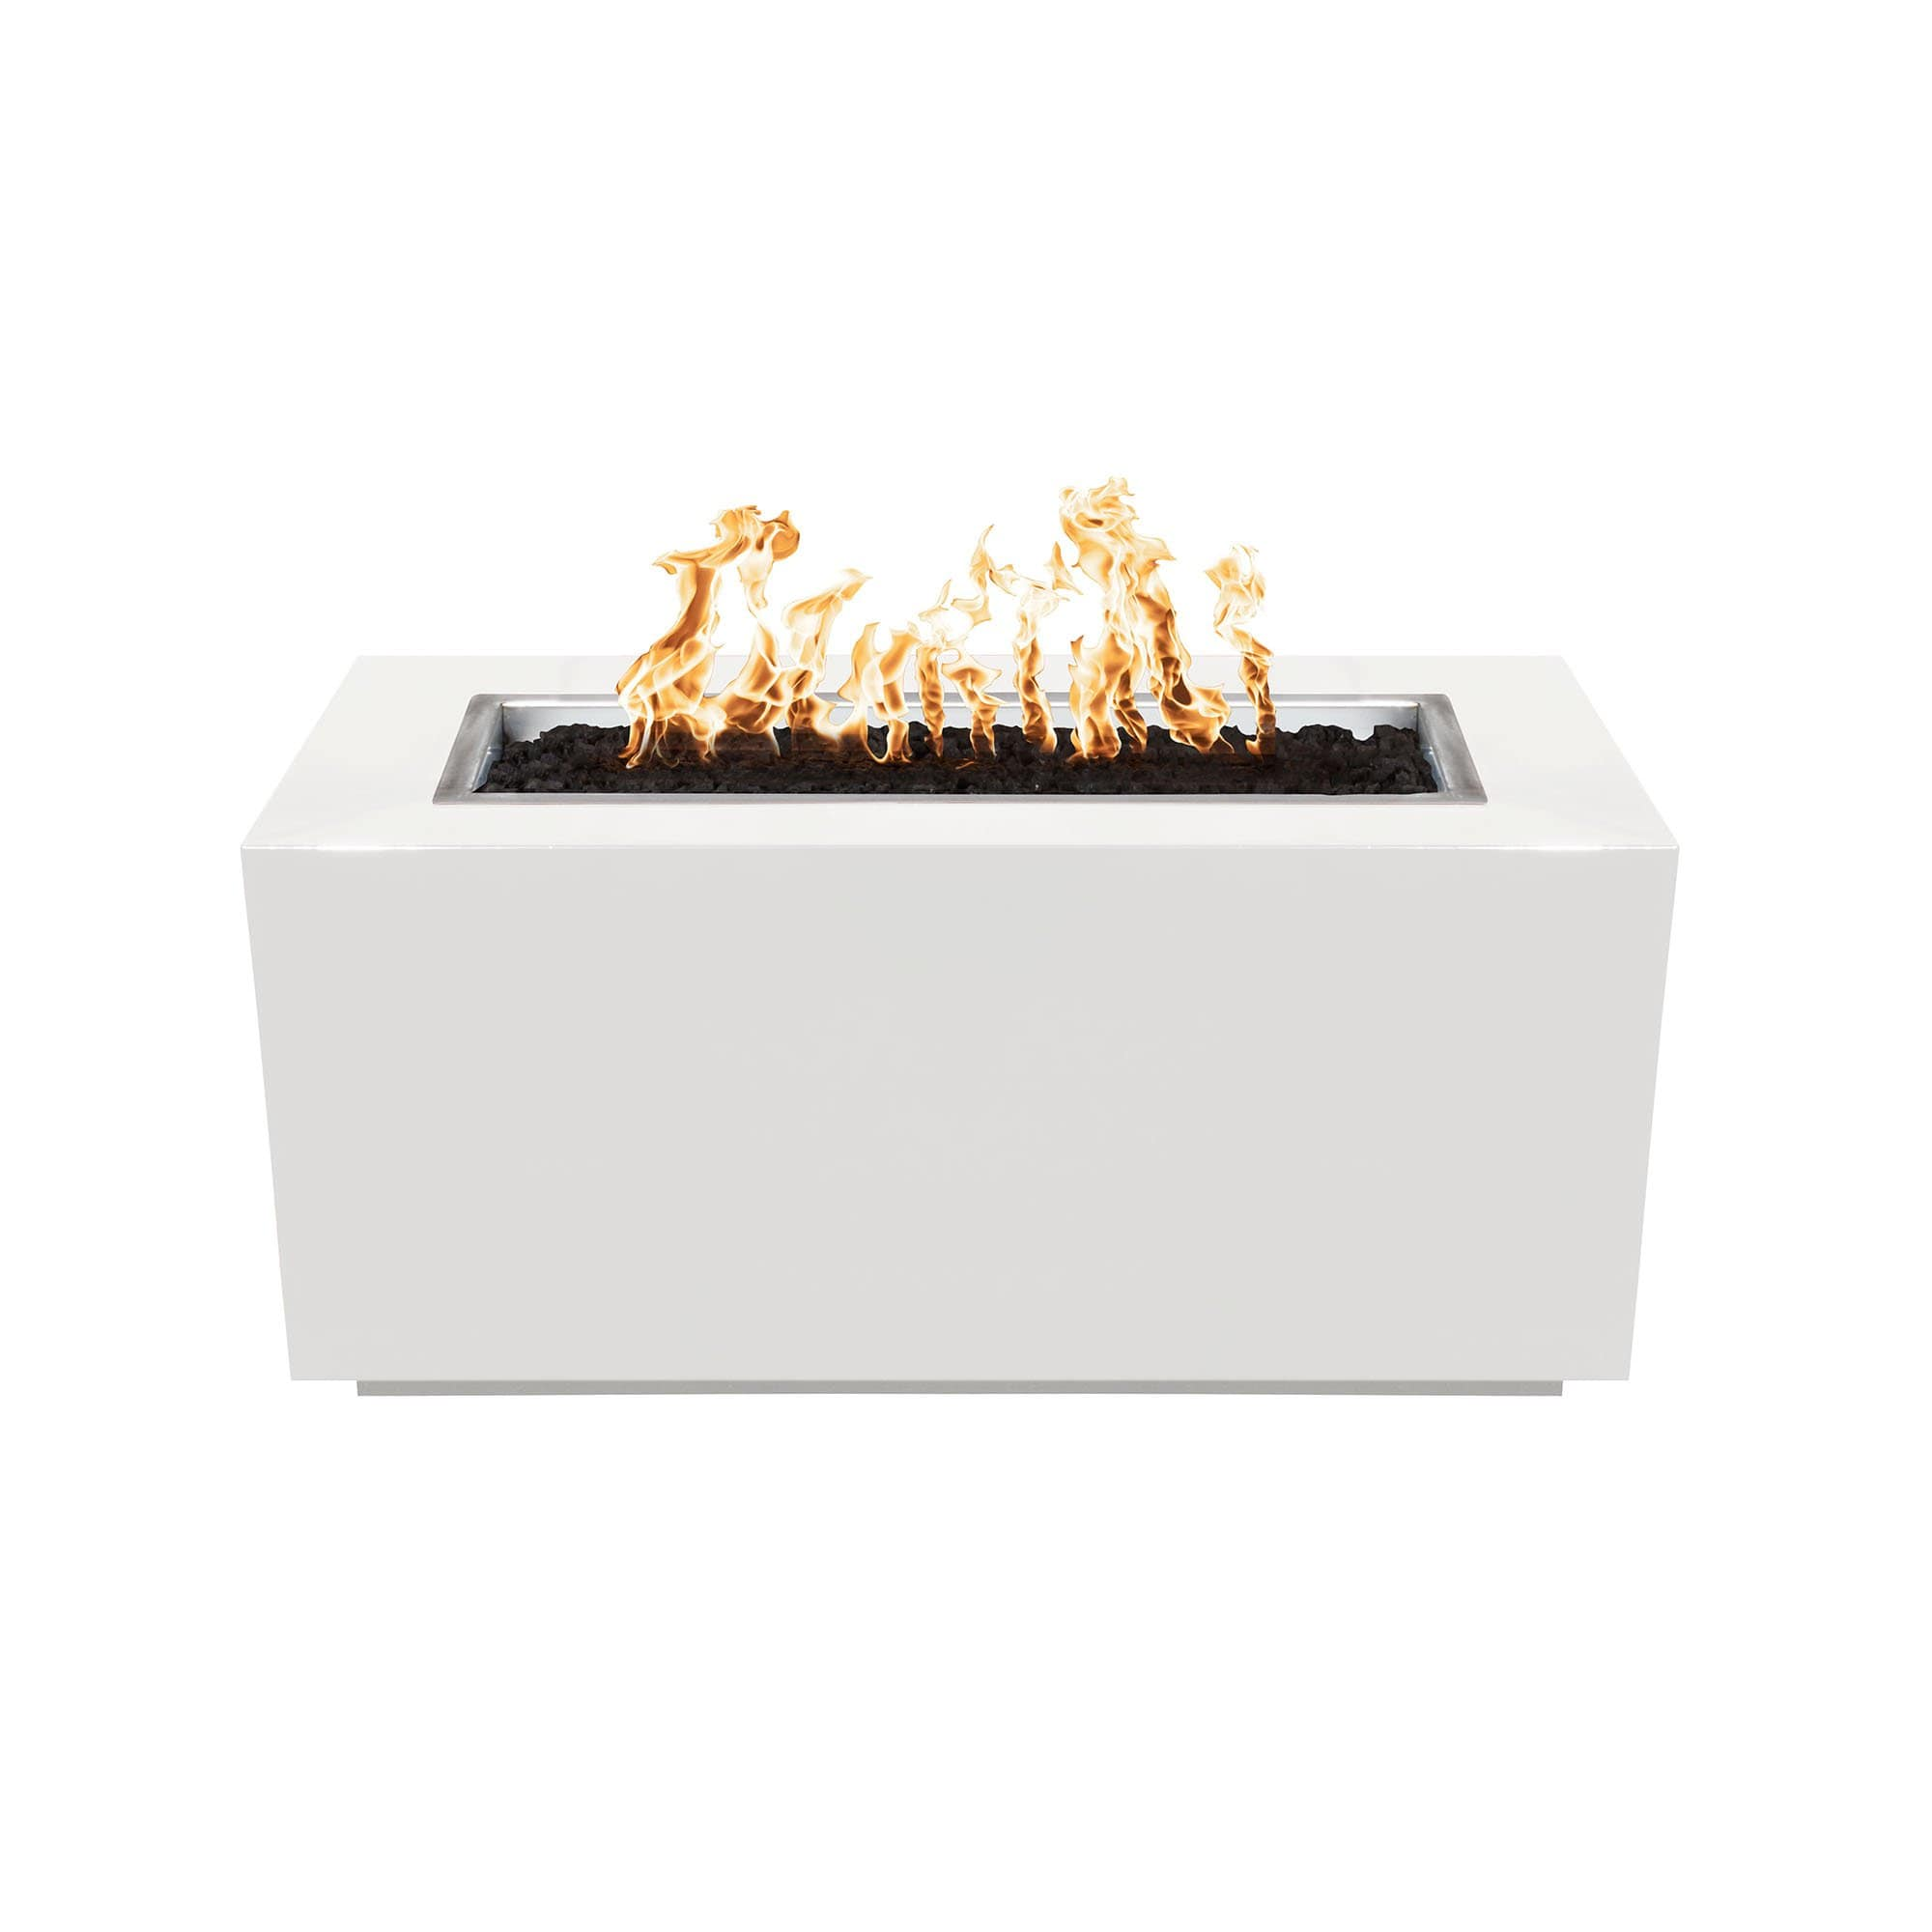 The Outdoor Plus Pismo Metal Fire Pit OPT-R8424 Fire Pit The Outdoor Plus White Powdercoat Electronic Ignition Natural Gas